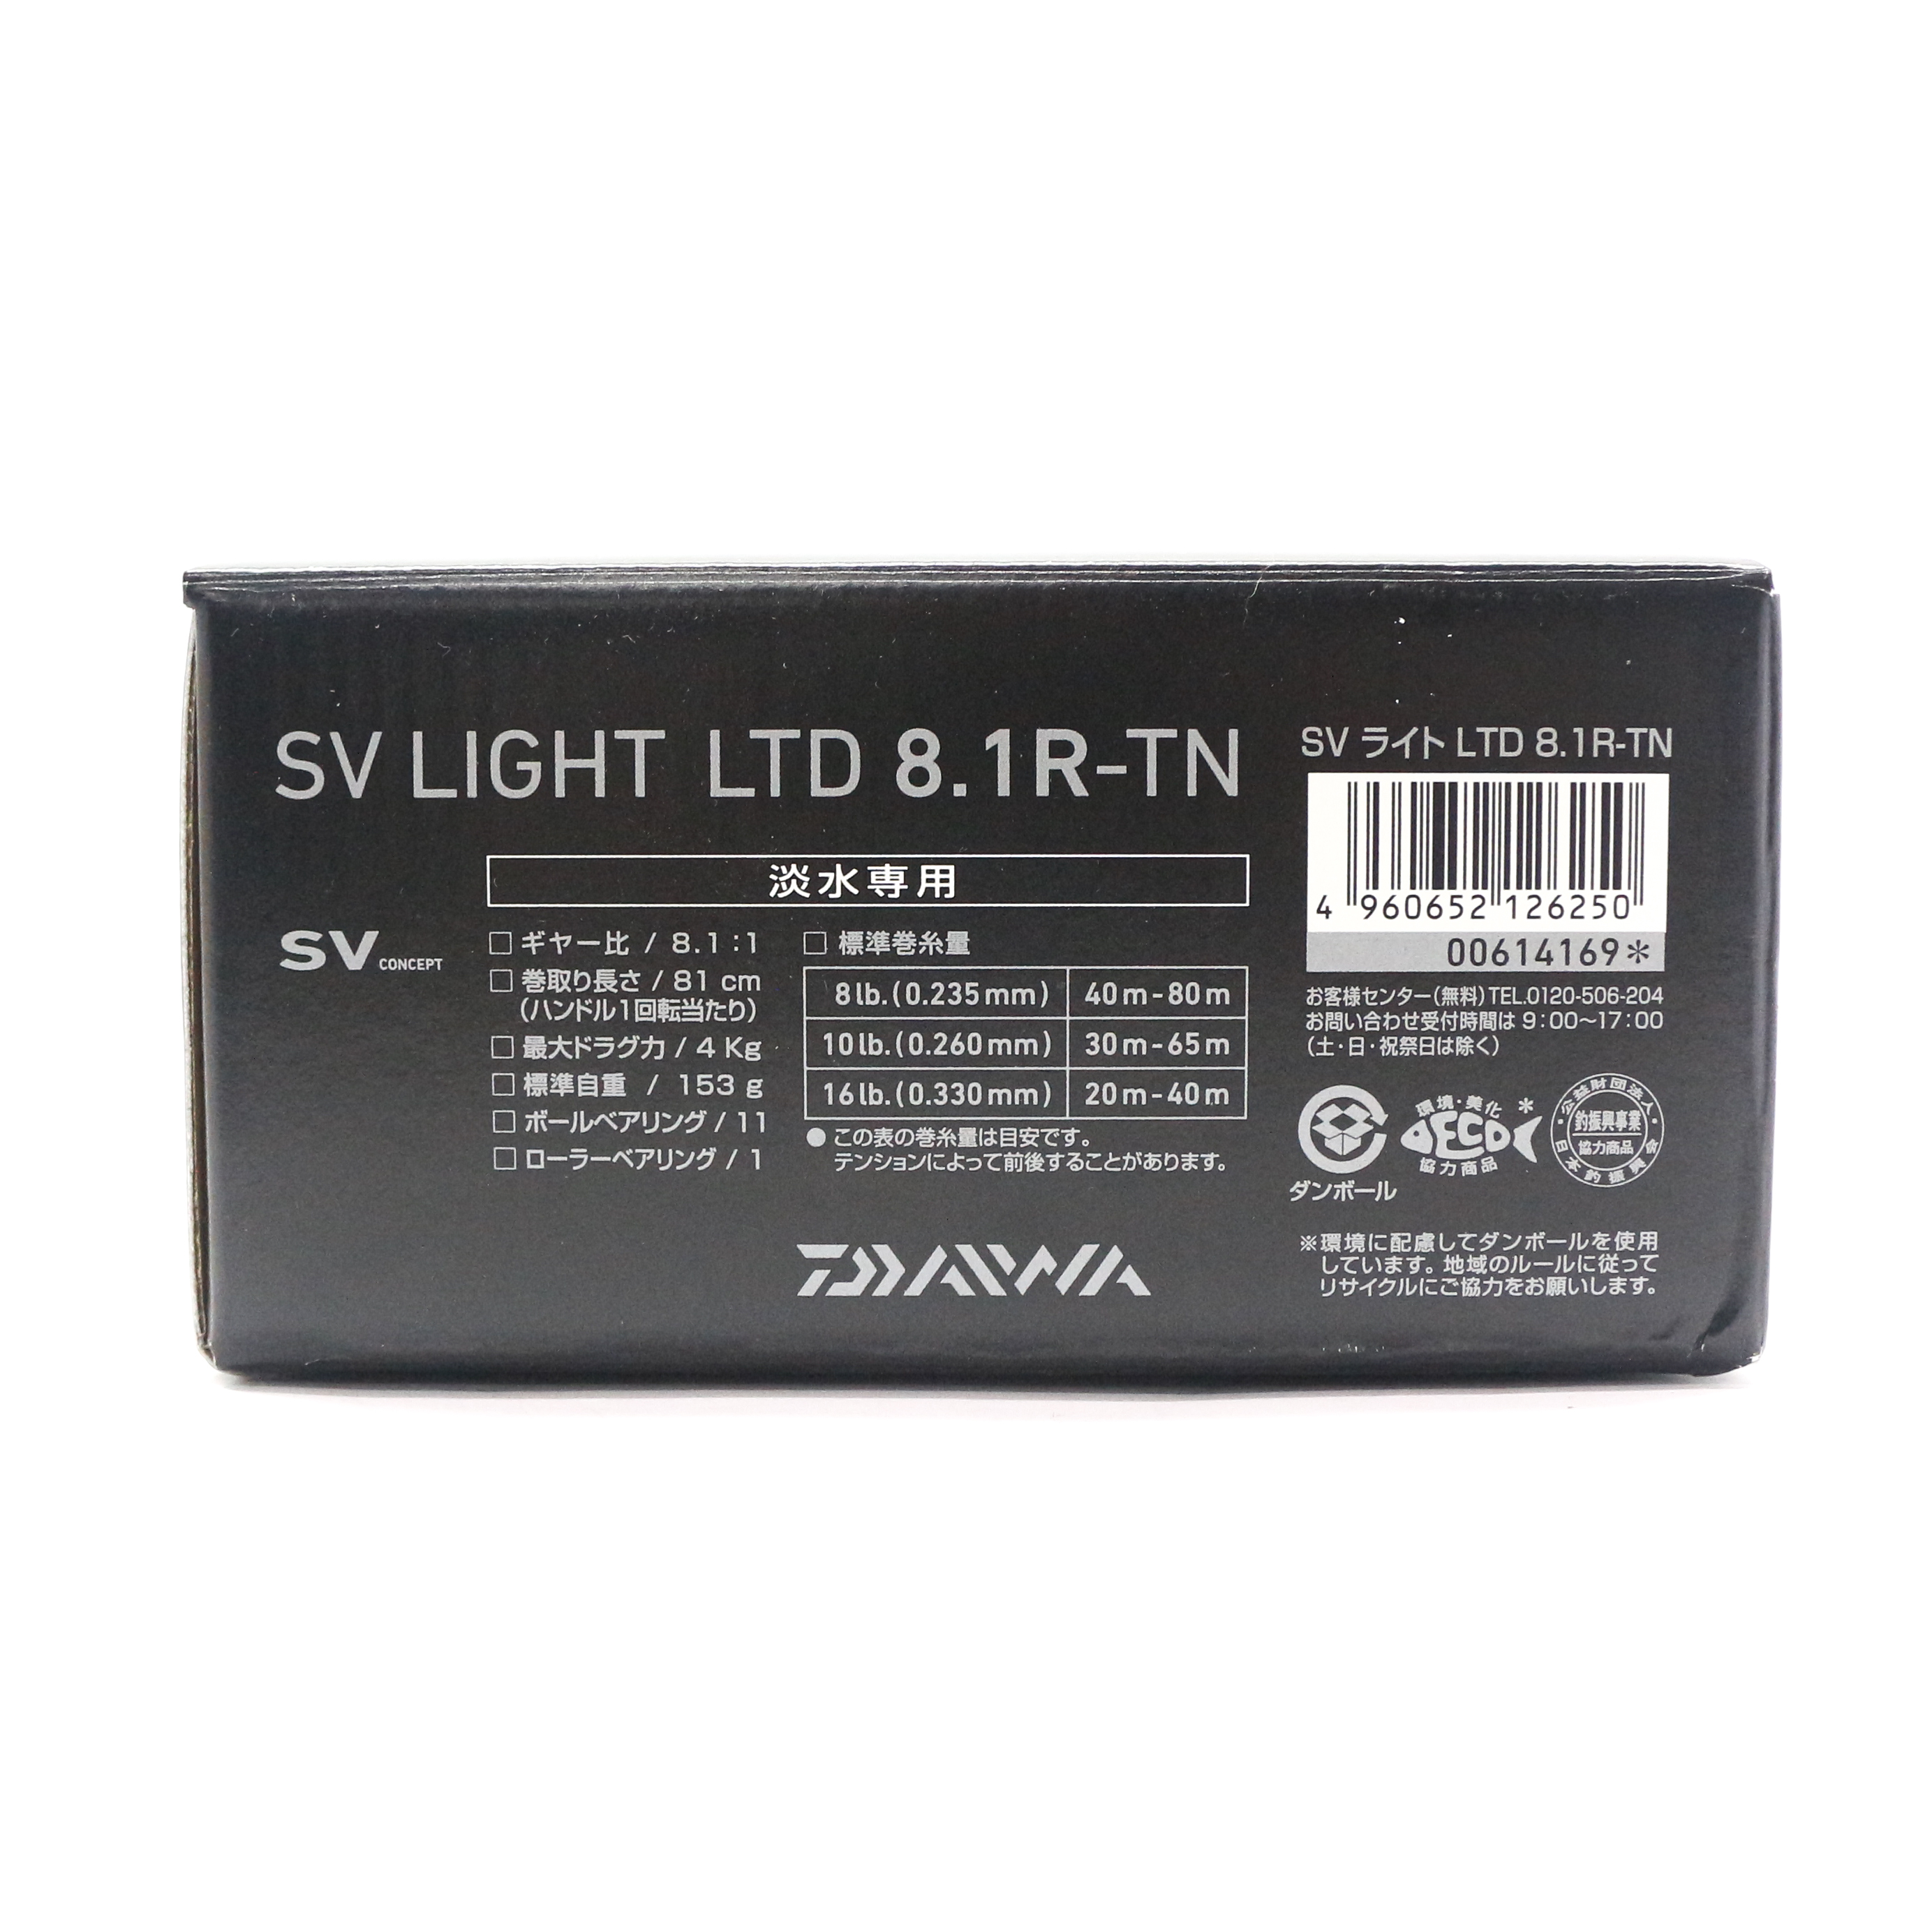 Daiwa Reel Baitcast Sv Light Ltd 8.1 R - TN (6250) #